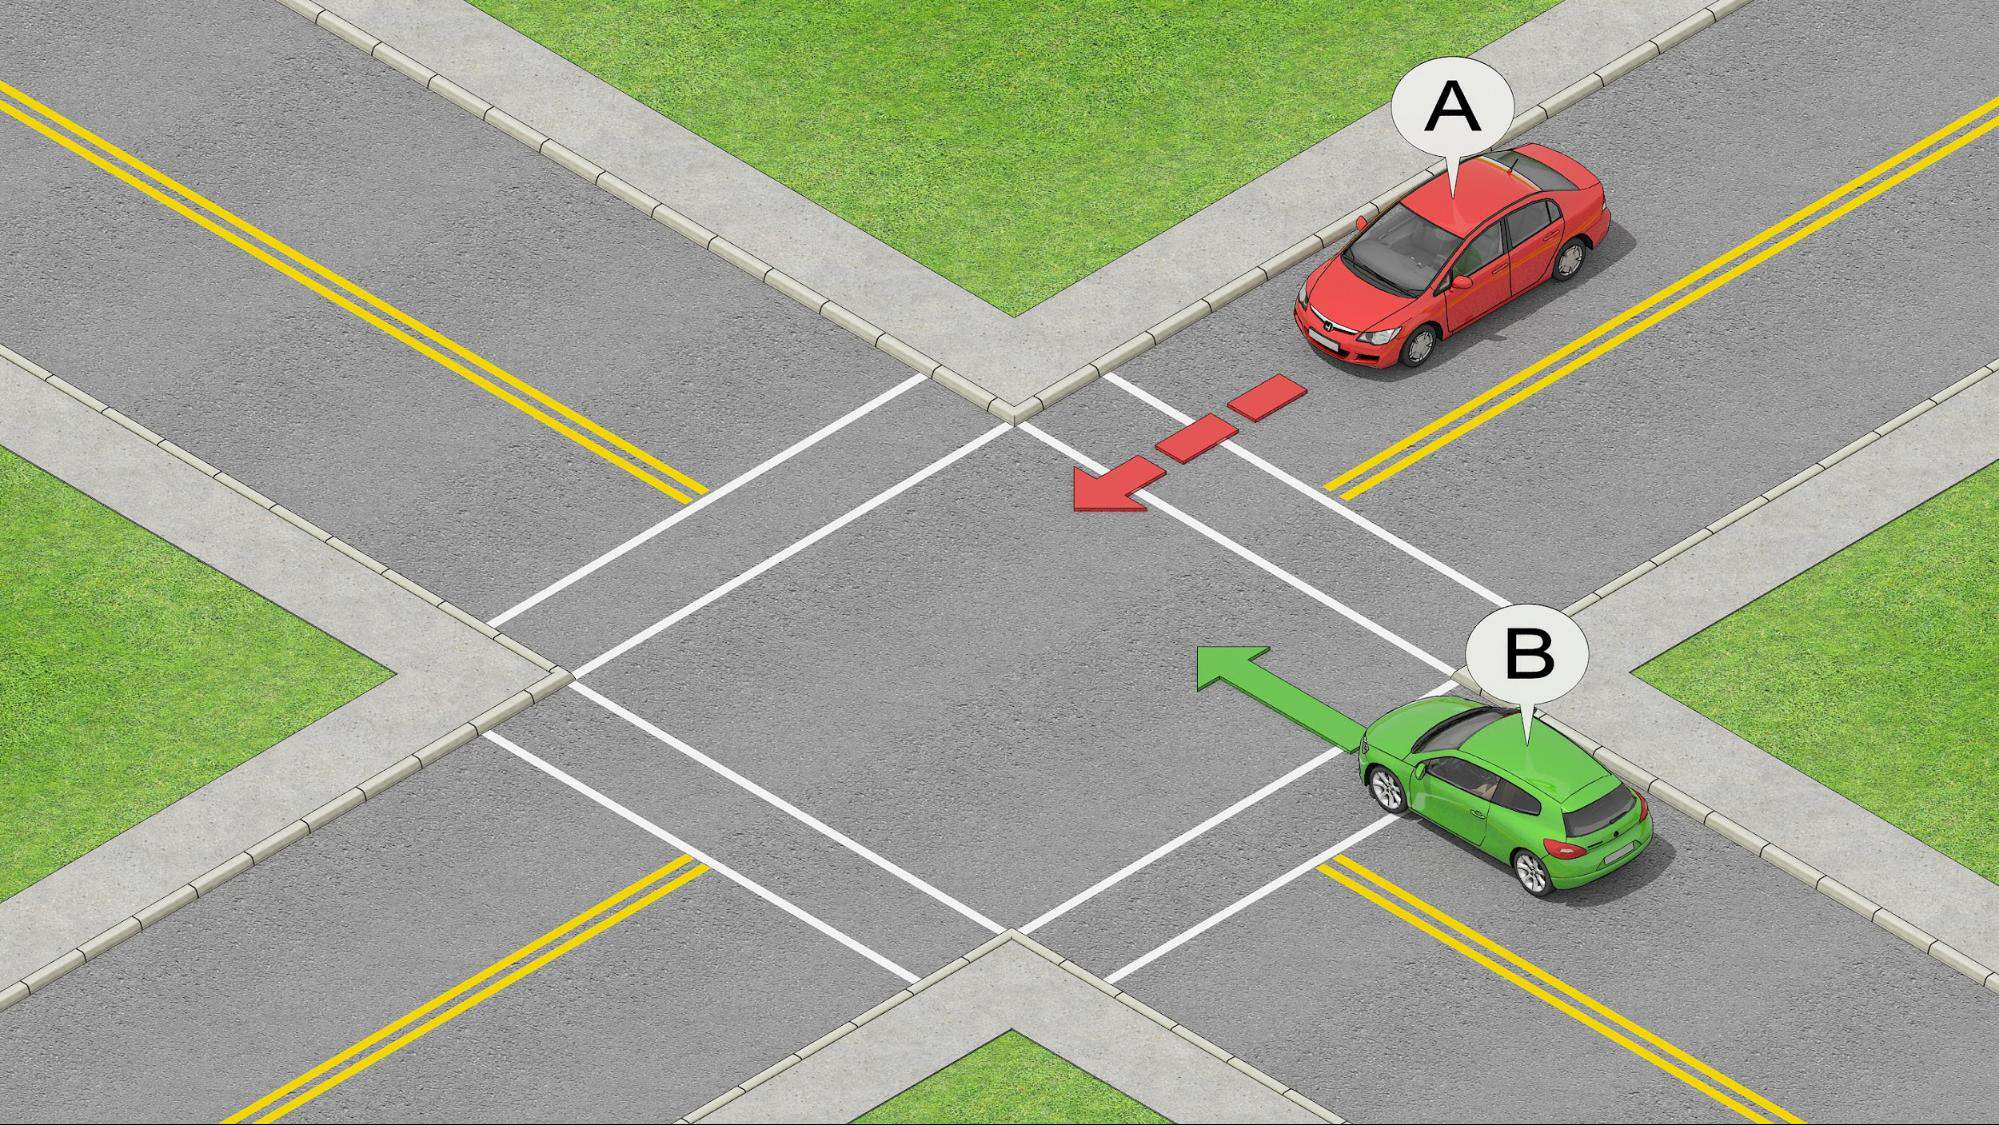 car B arrived first at the uncontrolled intersection and has priority